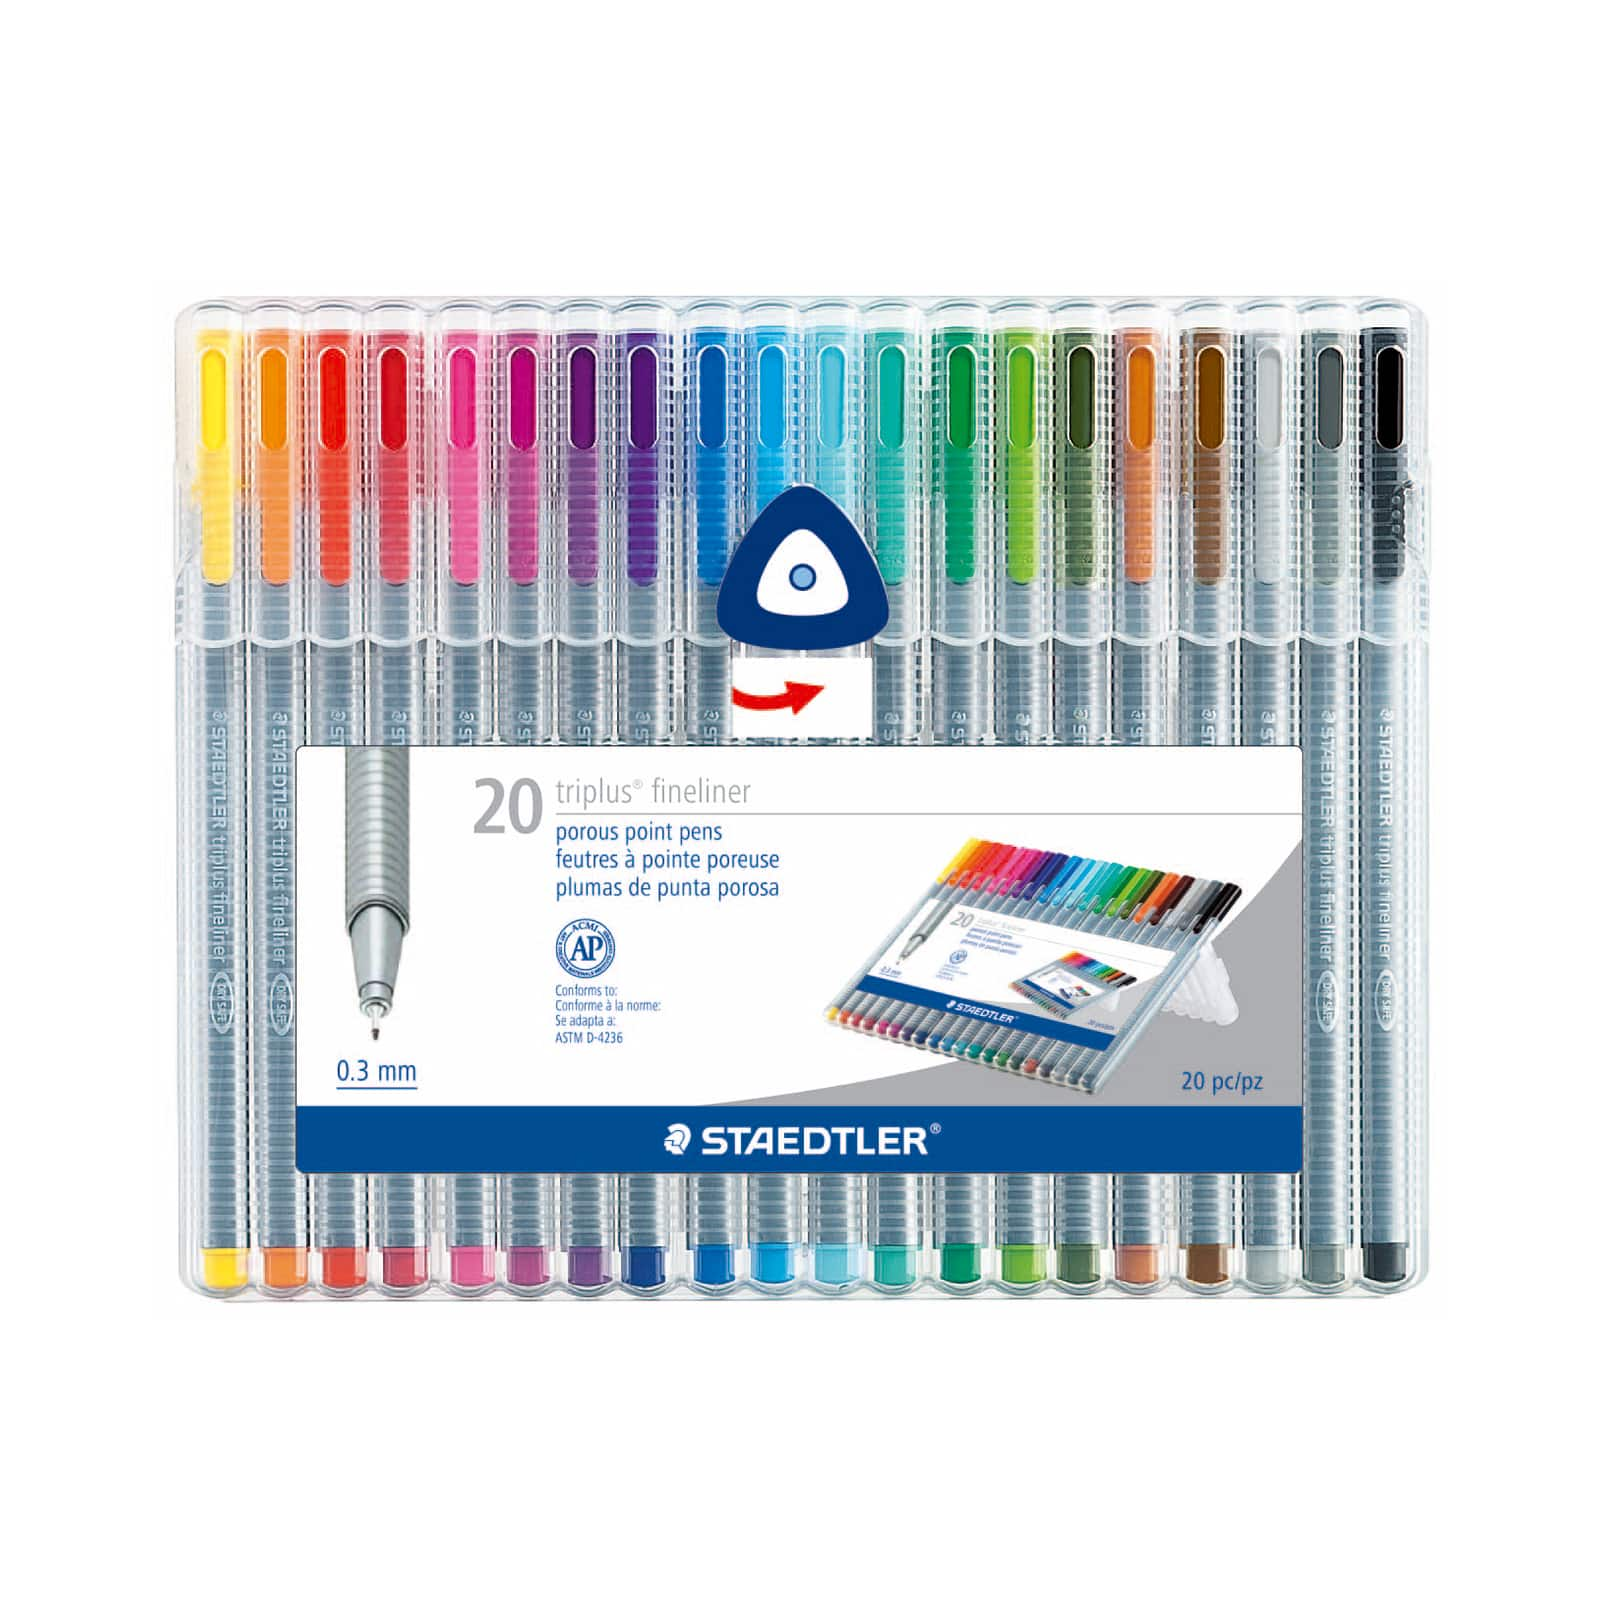 Staedtler Triplus Fineliner 0.3 mm Pens 20 Color Pack